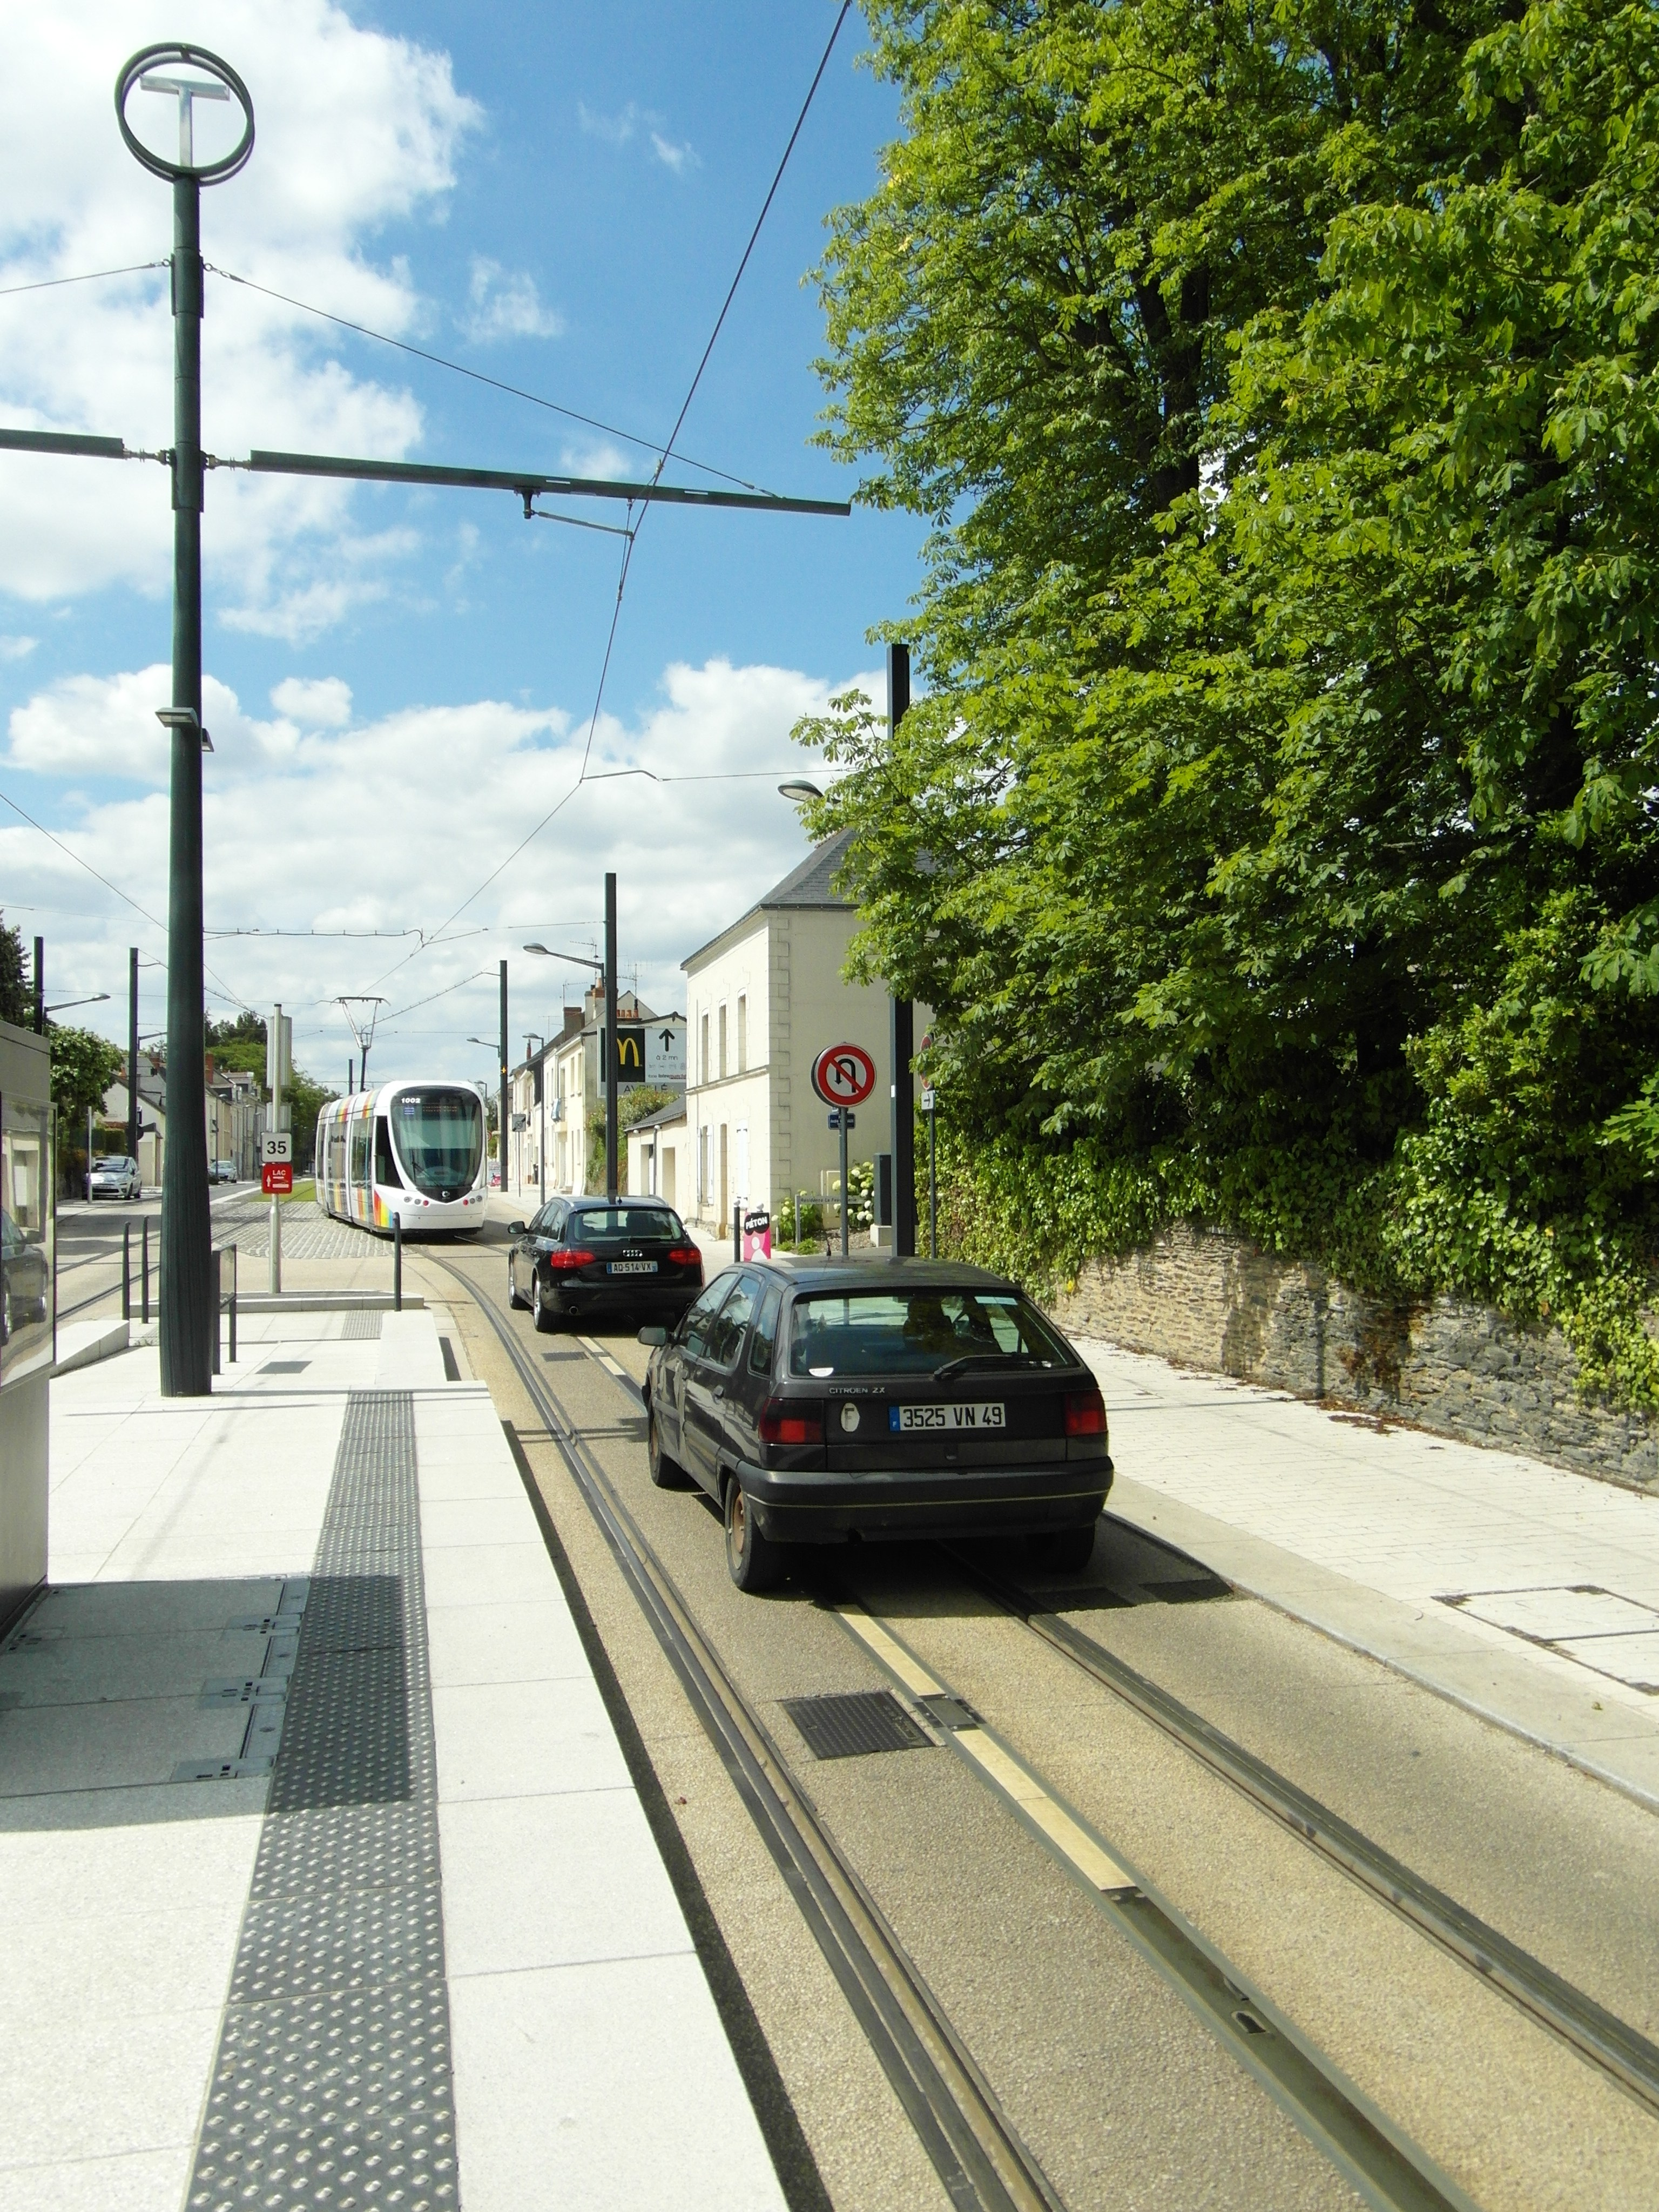 Extension du tramway du Havre Angers_-_Tramway_-_Avrill%C3%A9_(7663540330)